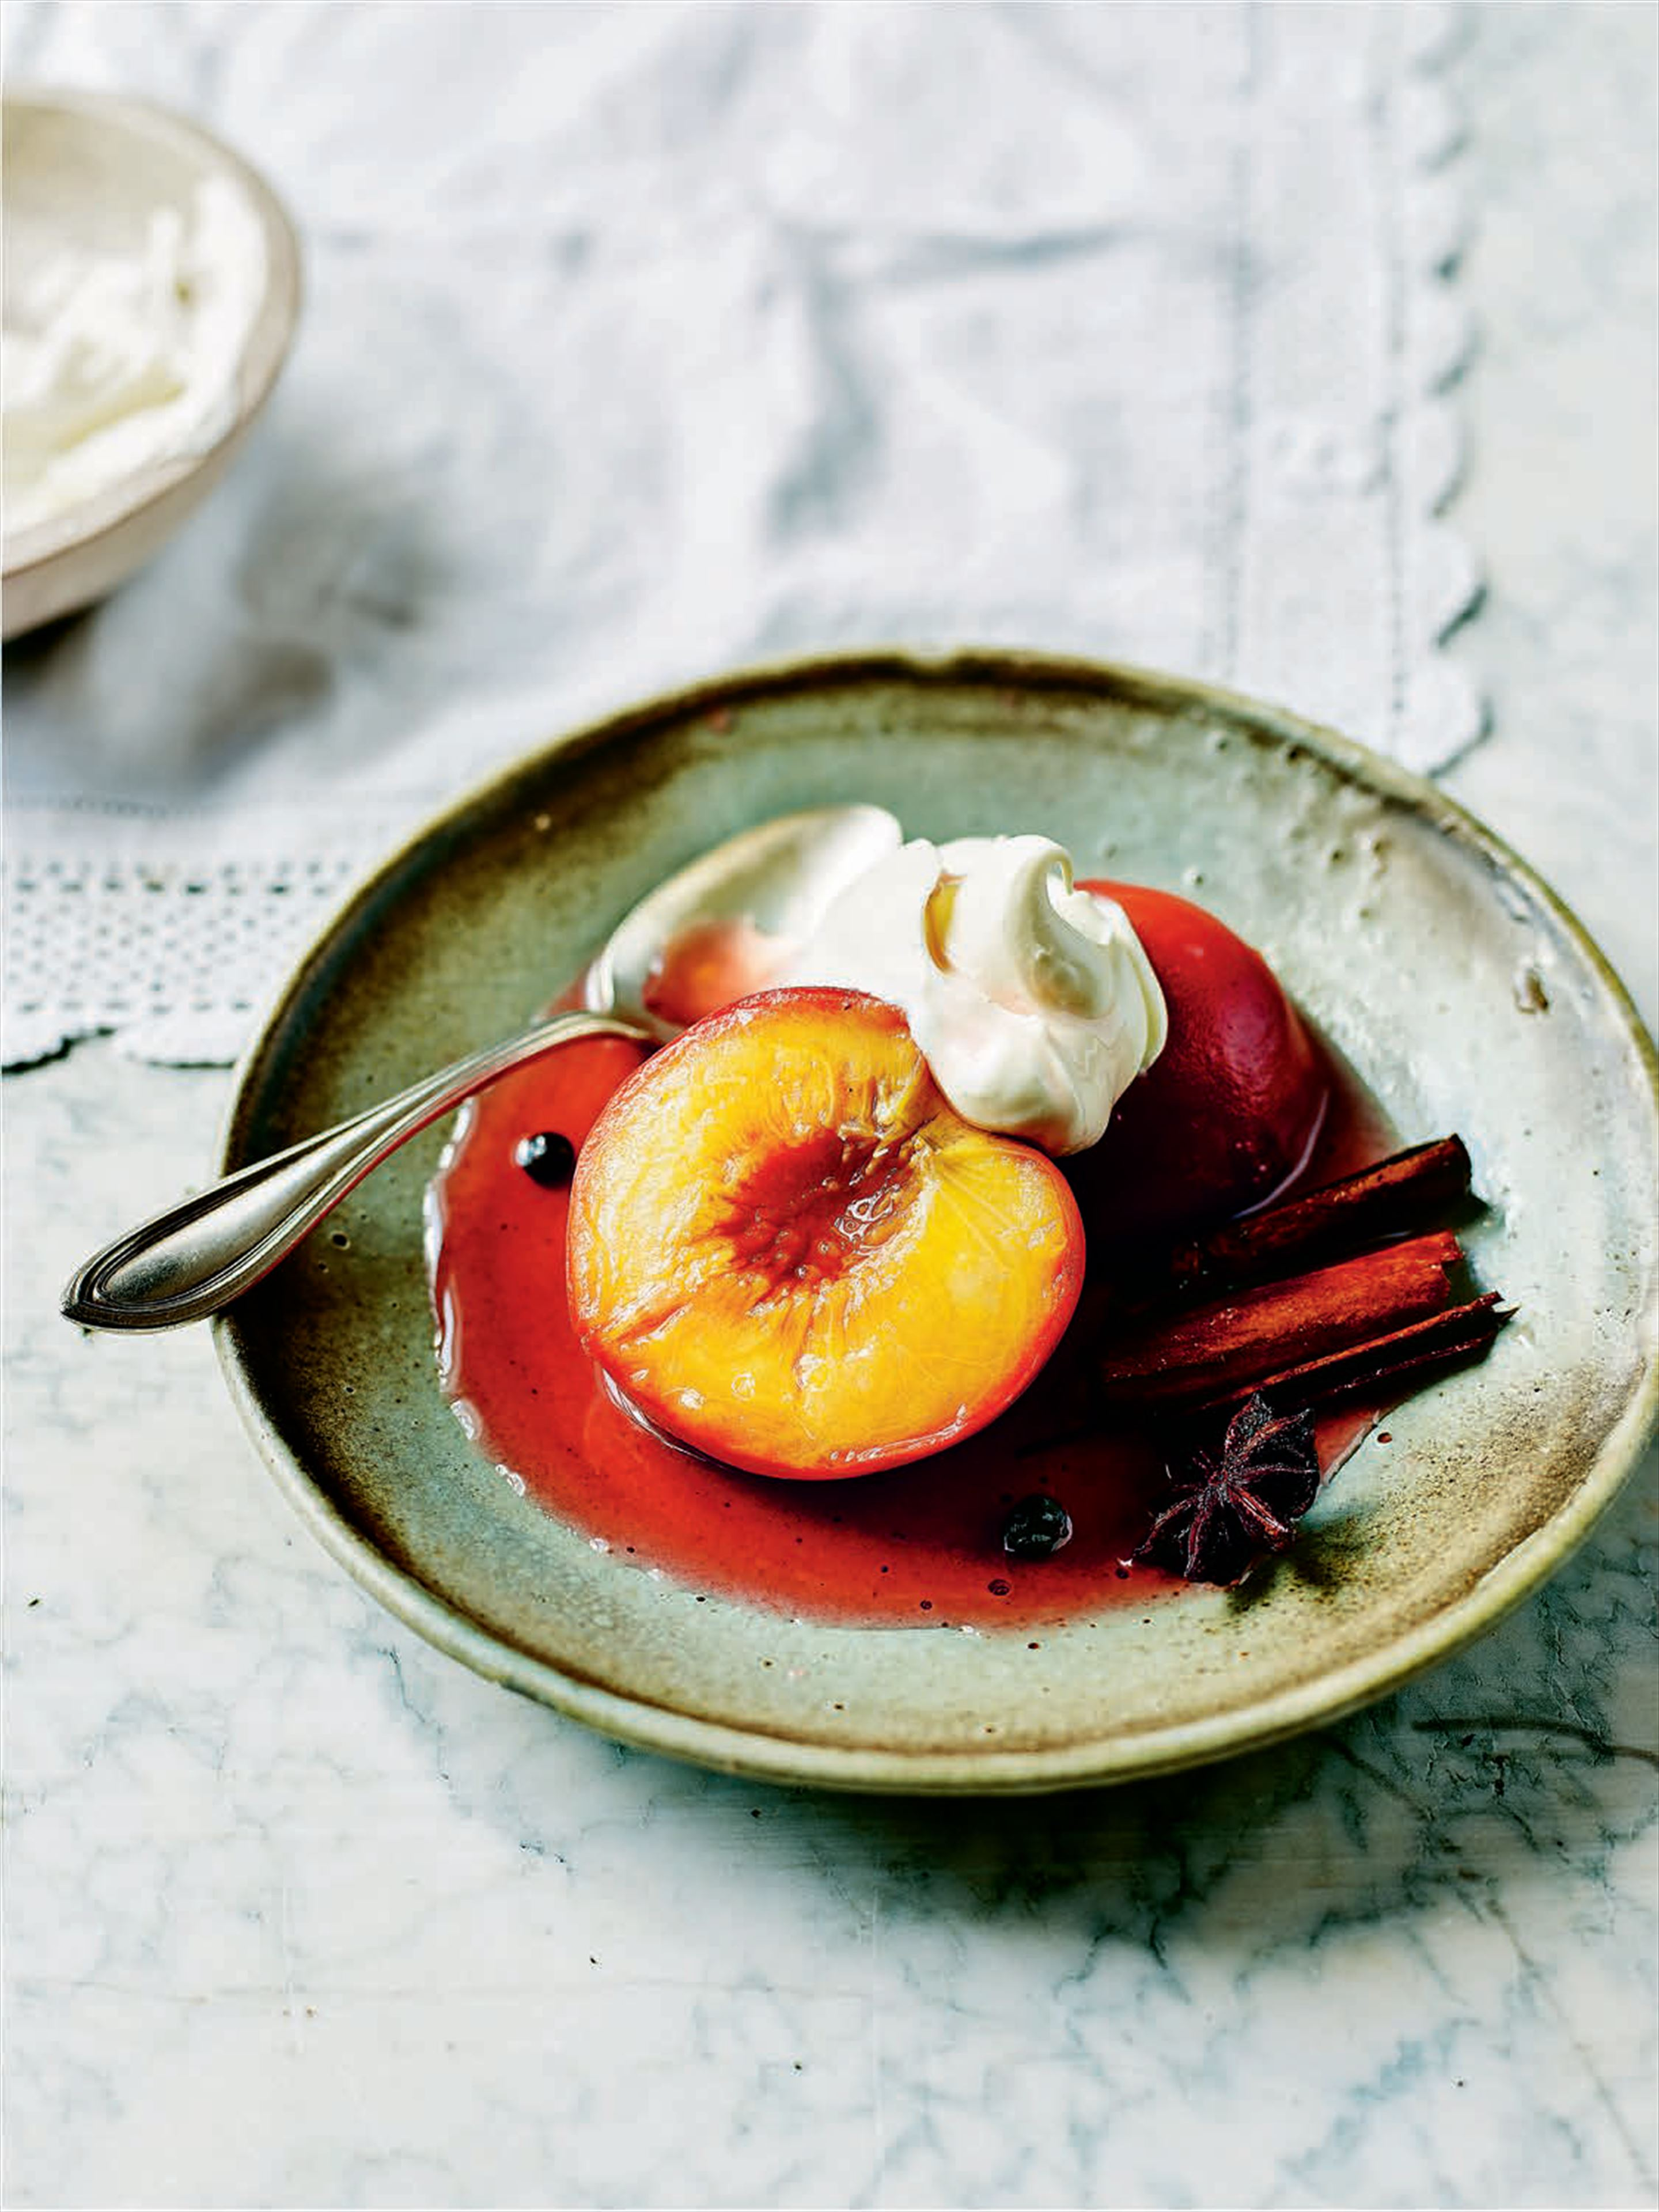 Peaches poached in muscatel wine